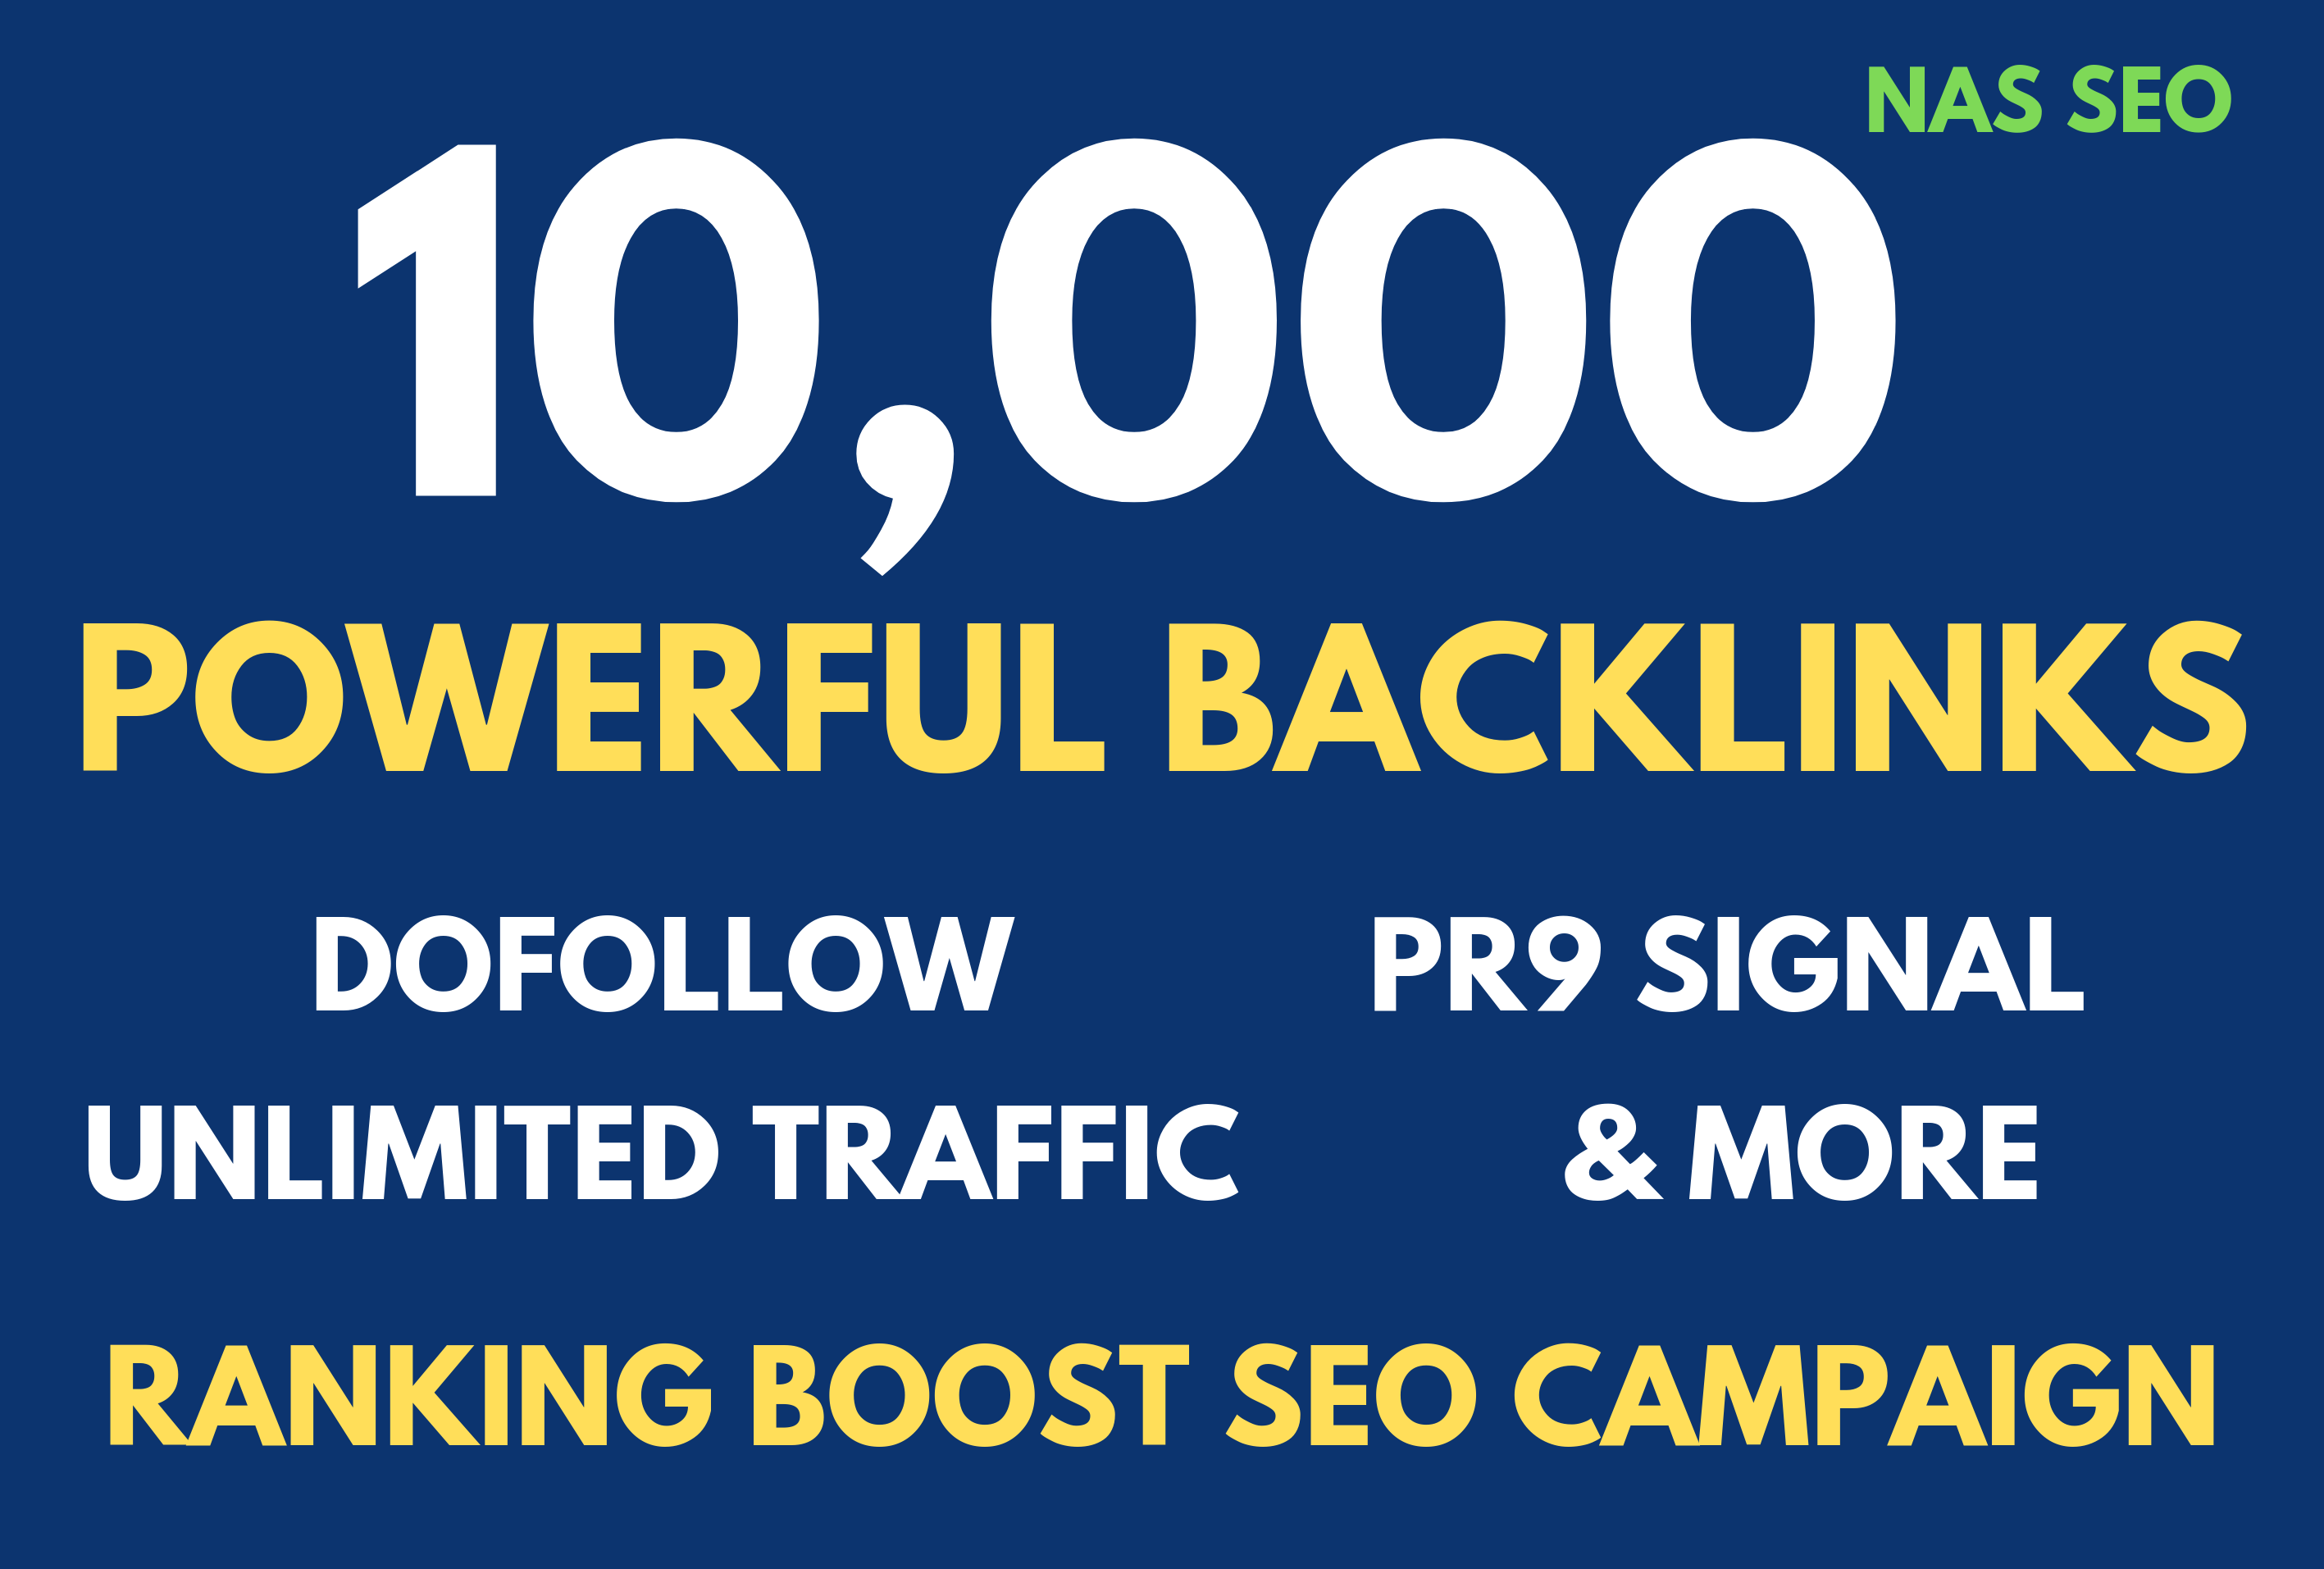 Powerful 10,000 Dofollow Backlinks - PR9 Social Signals with Bookmarks Added - UNLIMITED Traffic